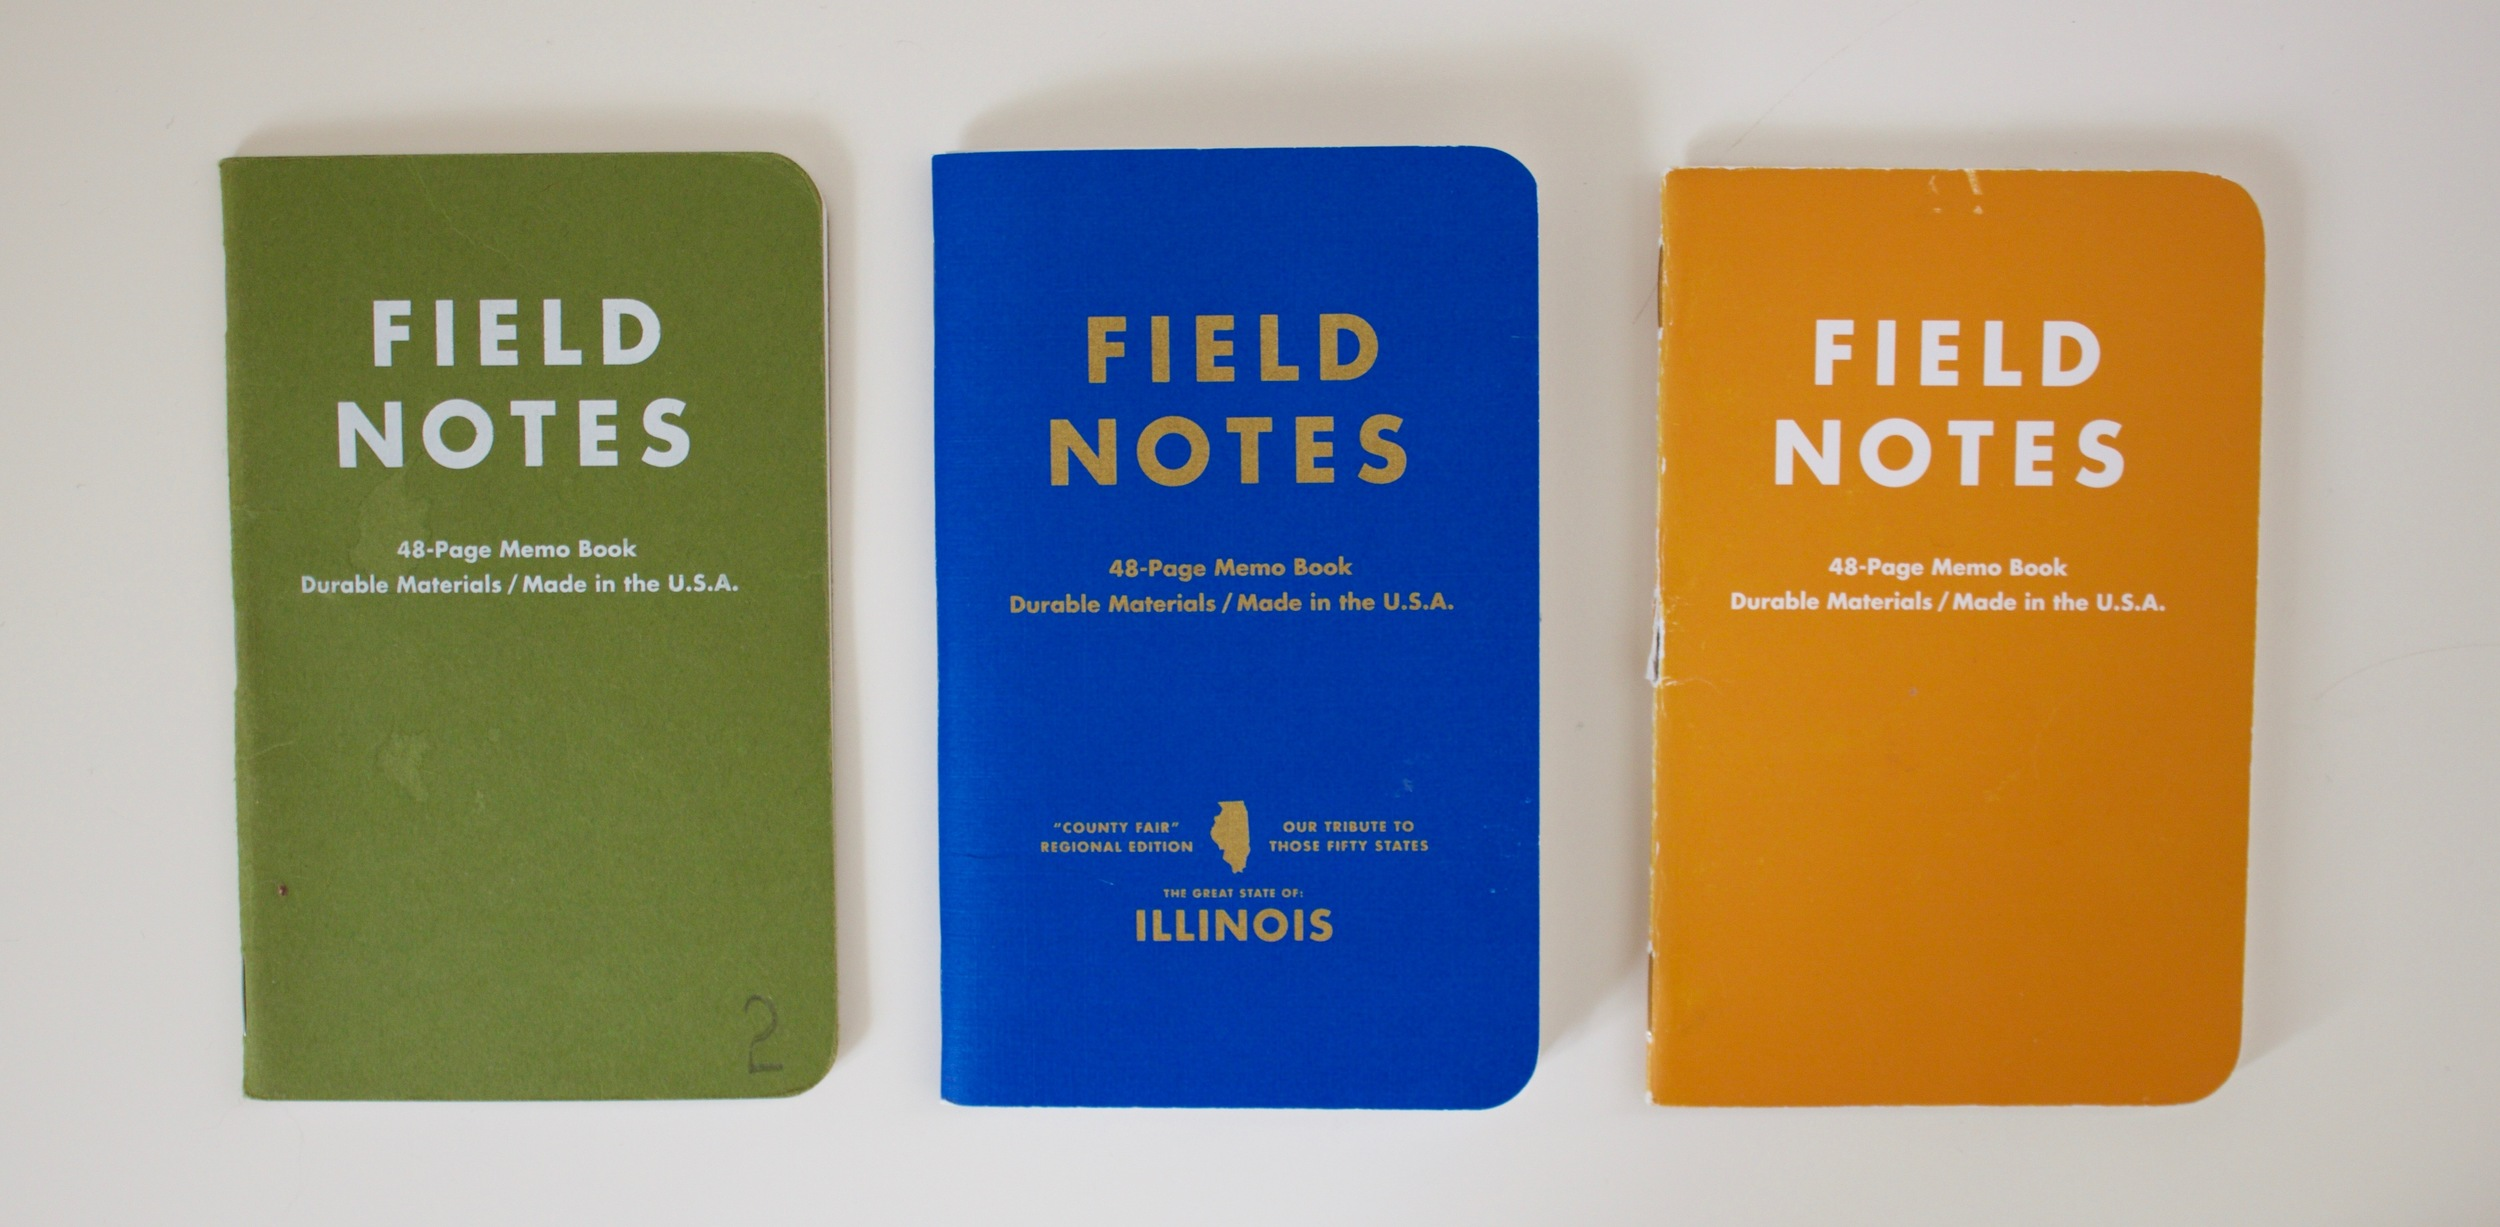 My top 3 Field Notes editions